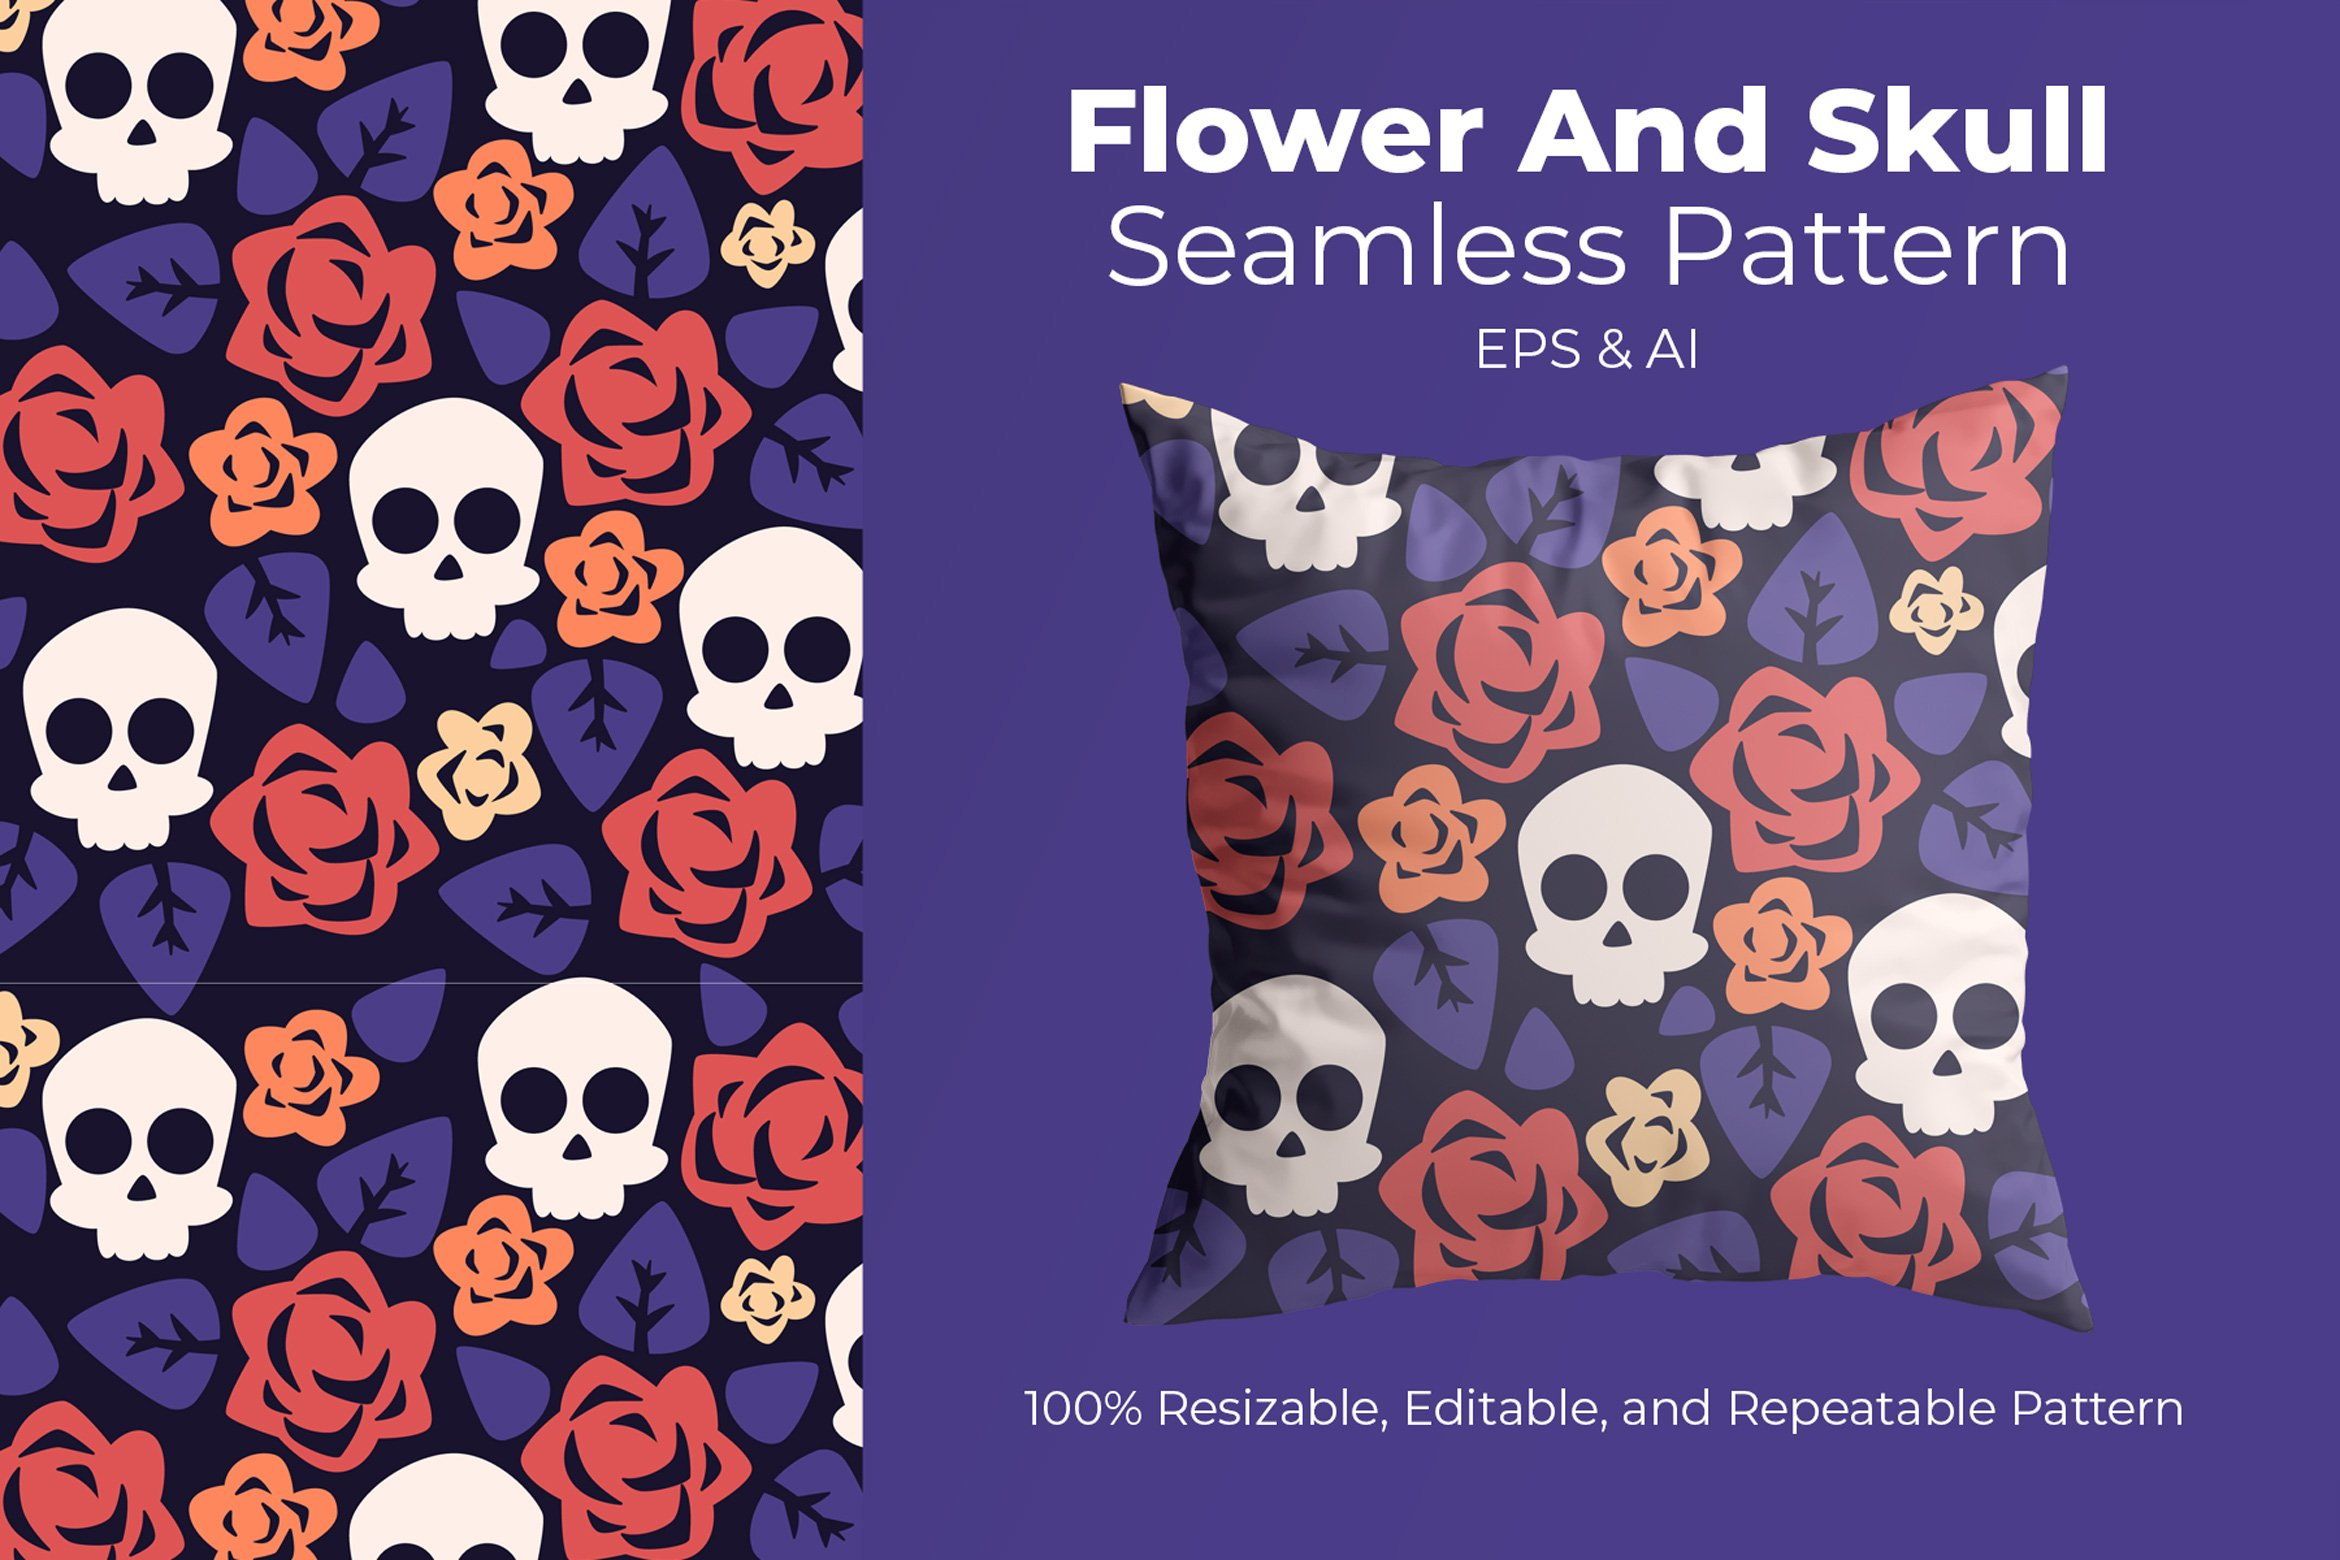 Flower And Skull - Seamless Pattern example image 1